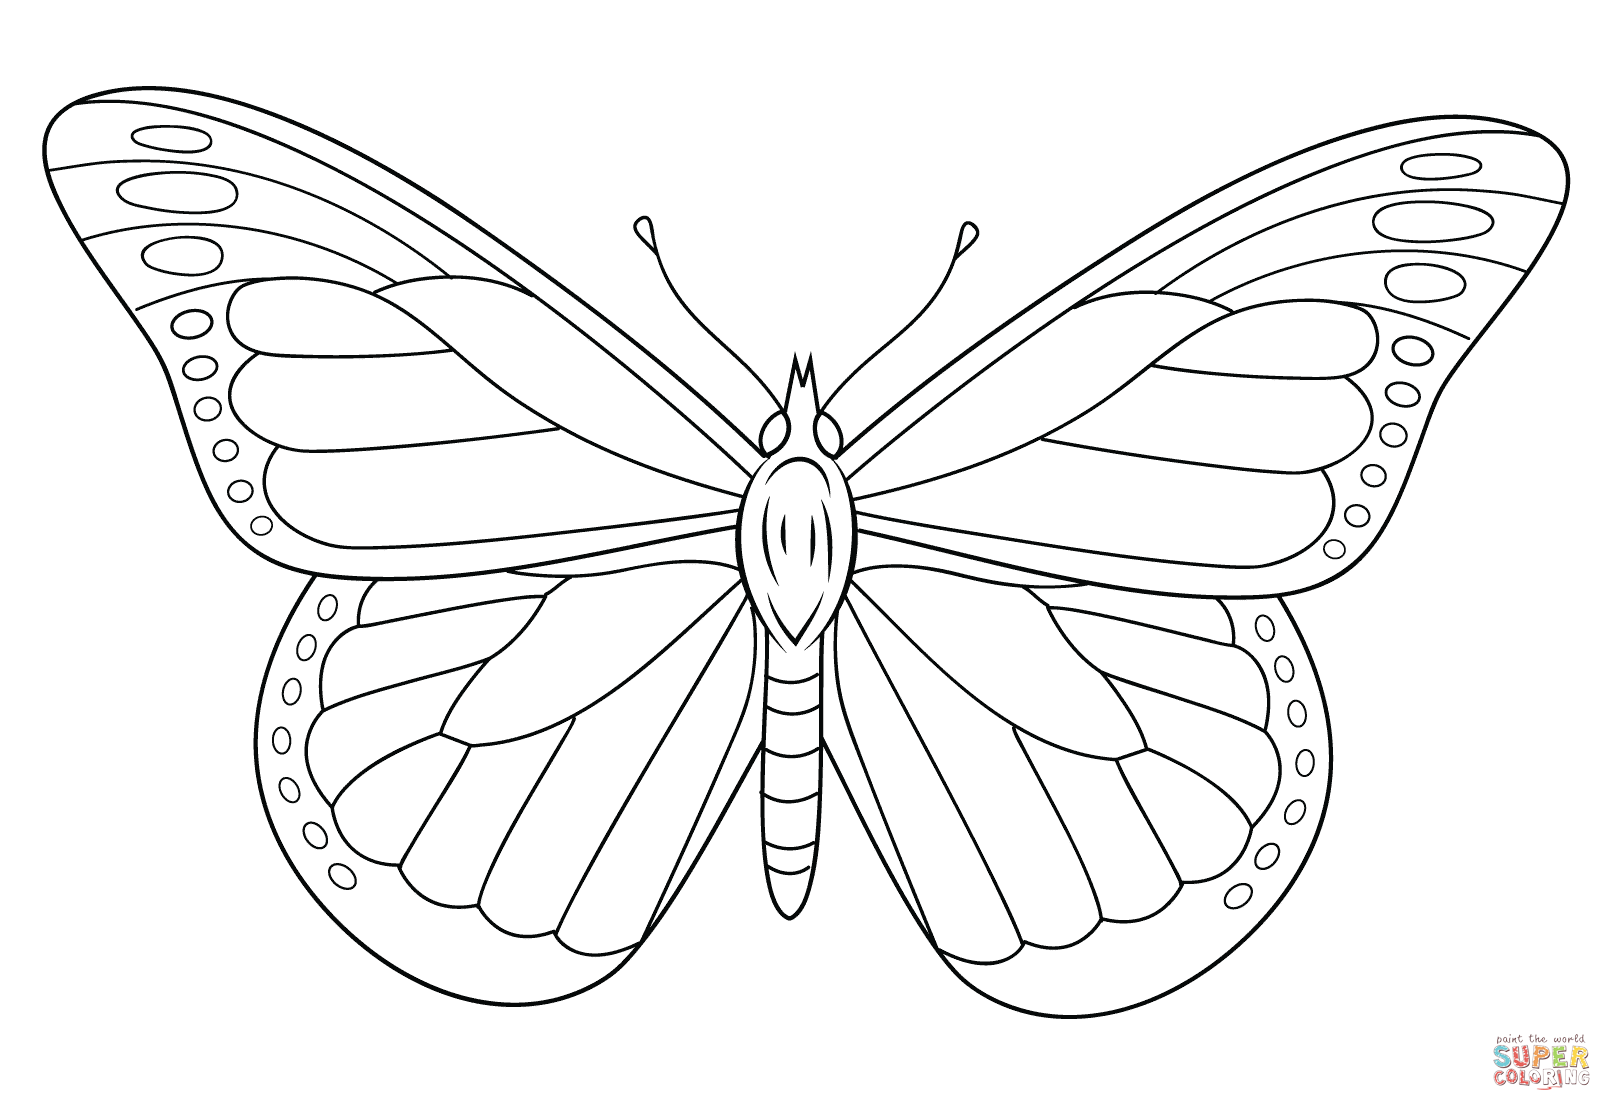 kamehameha butterfly coloring page photo - 1